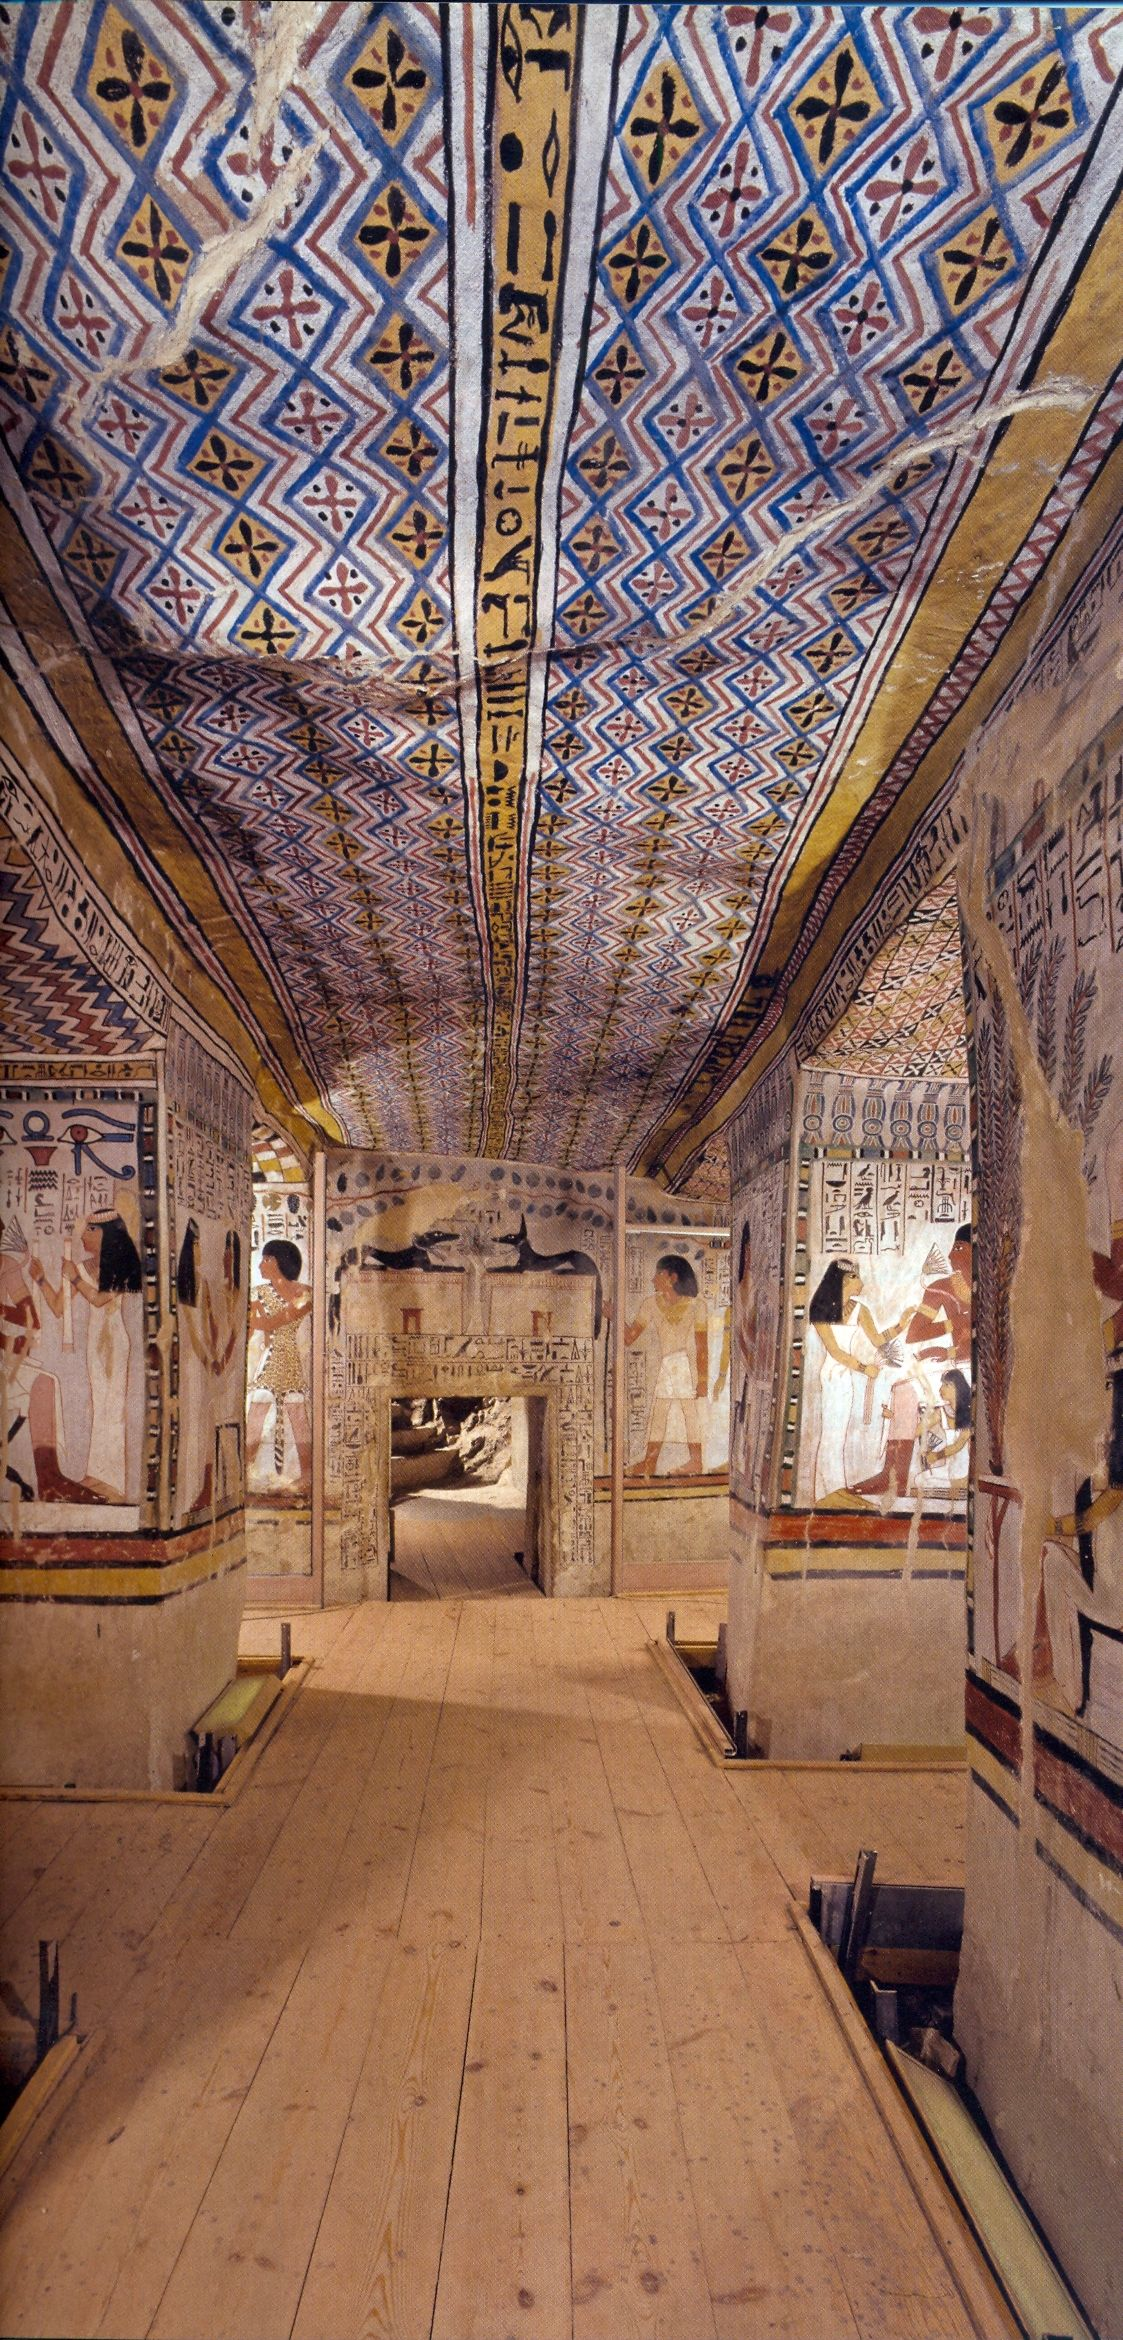 Egyptian Tombs Tombs Had Featured Art The Art Was Scenes